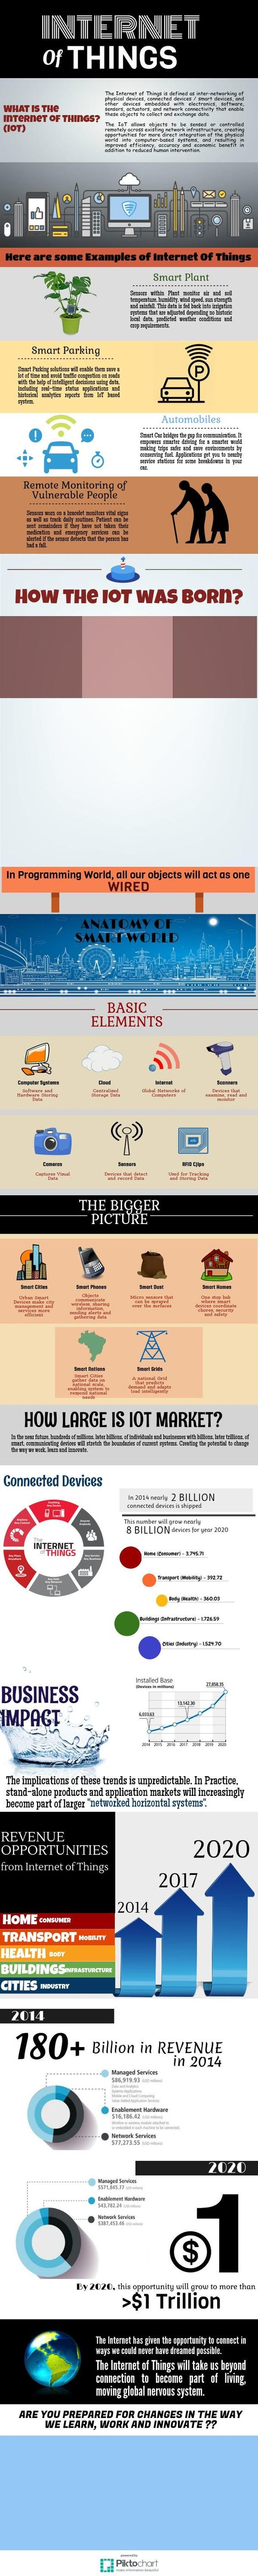 The internet of things #IoT #smart_city #Infographic